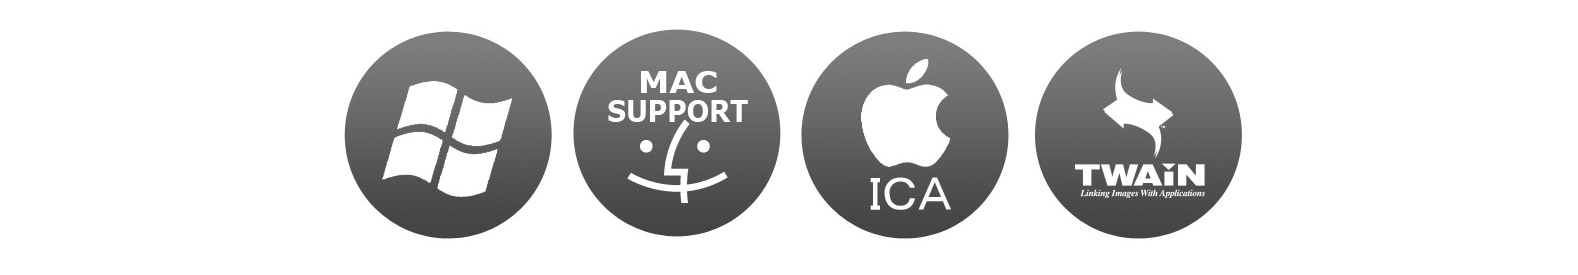 Windows,Mac,ICA,TWAIN